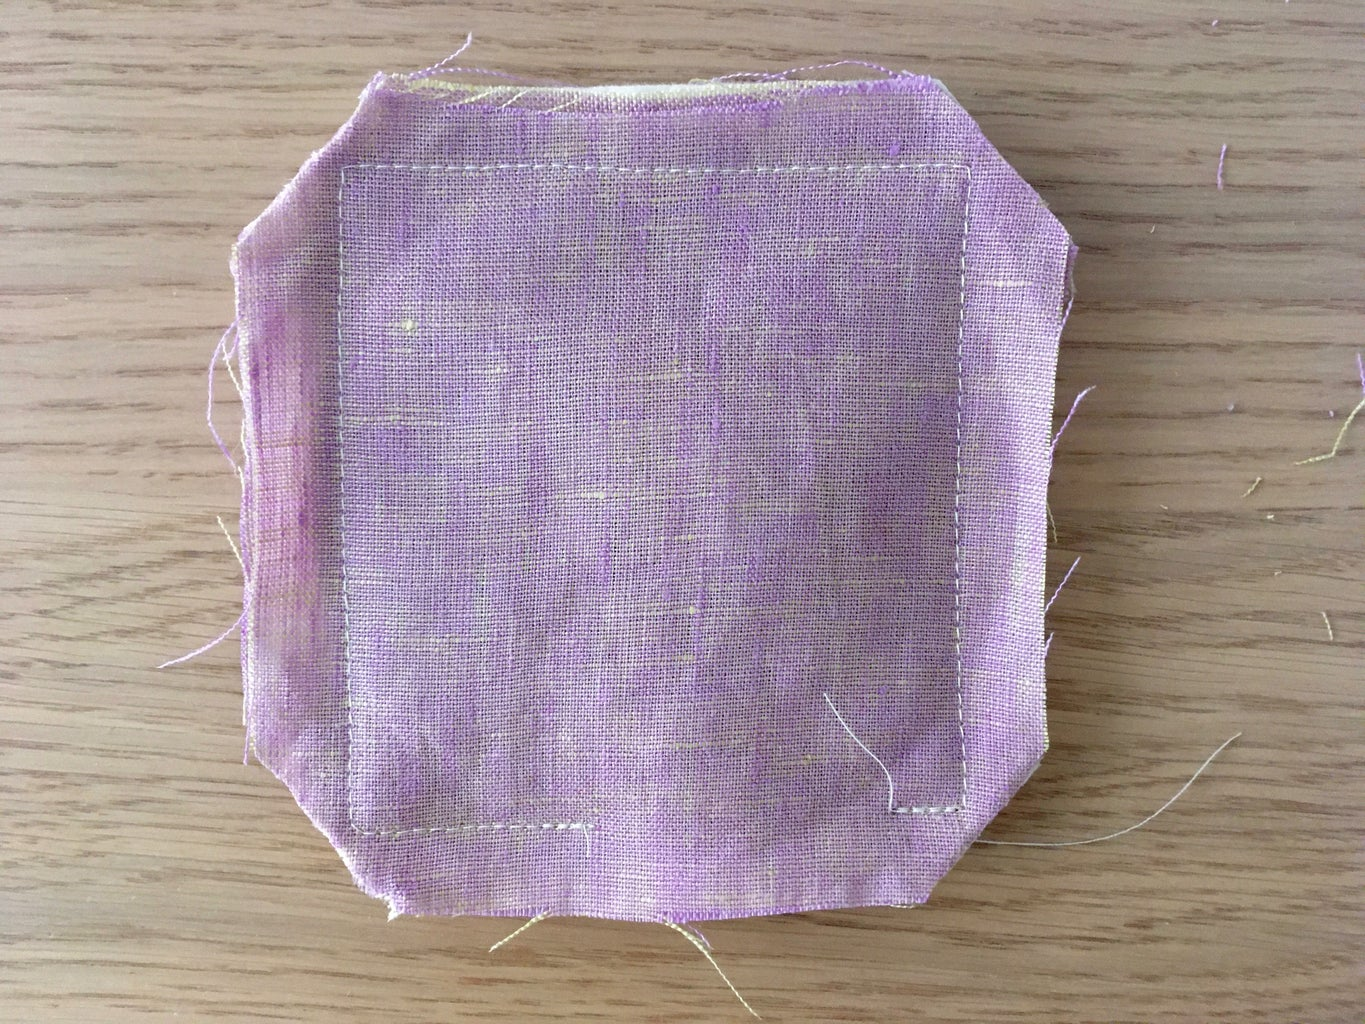 Sewing Squares Together